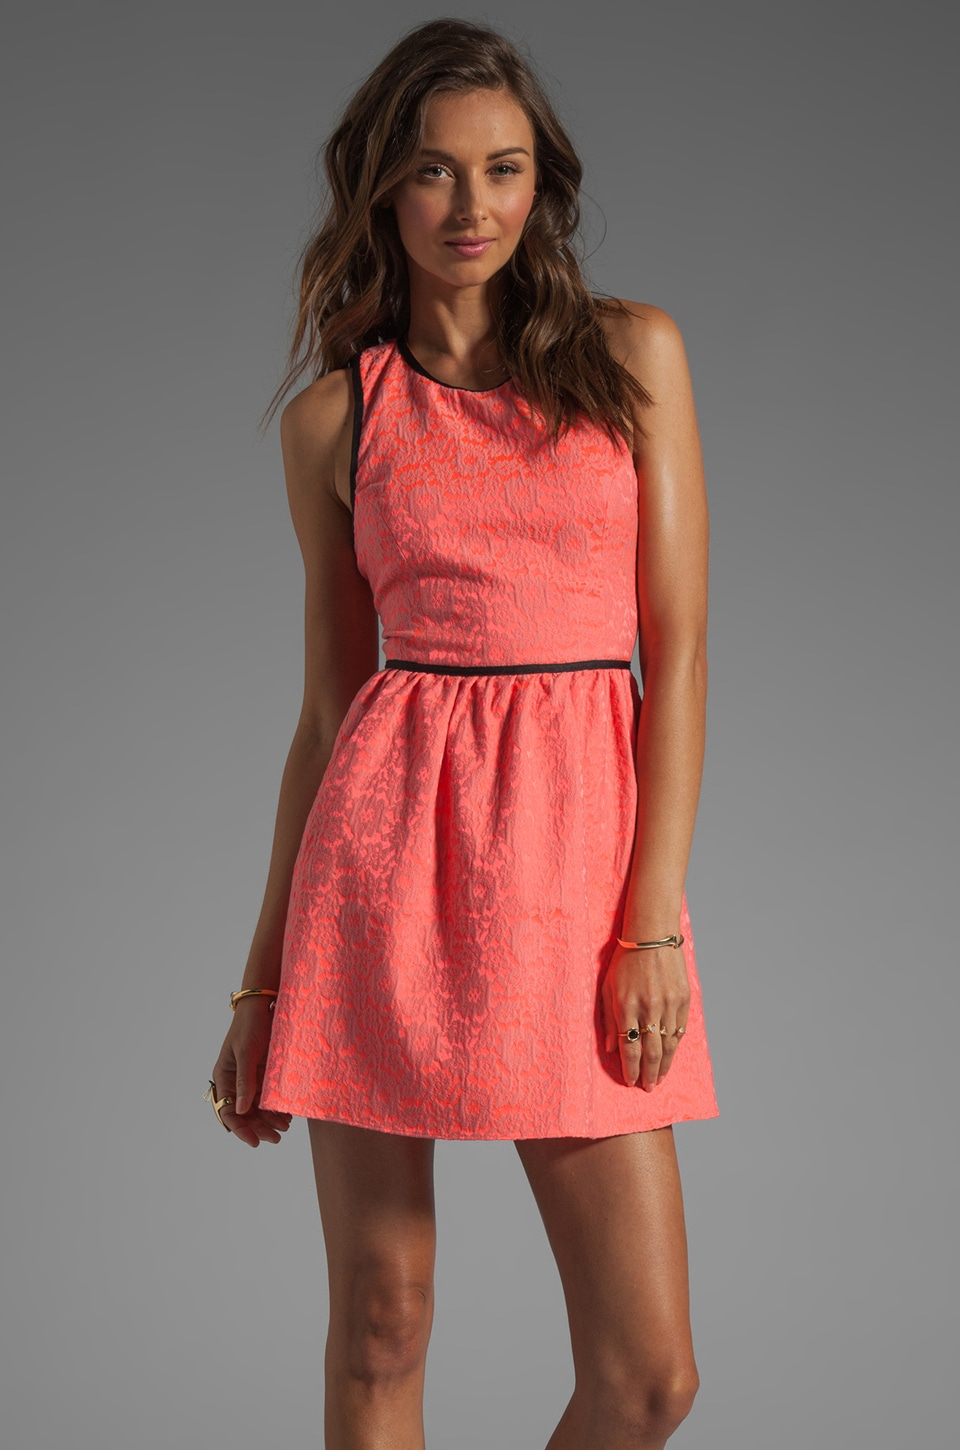 Parker Channing Floral Dress in Grapefruit Combo